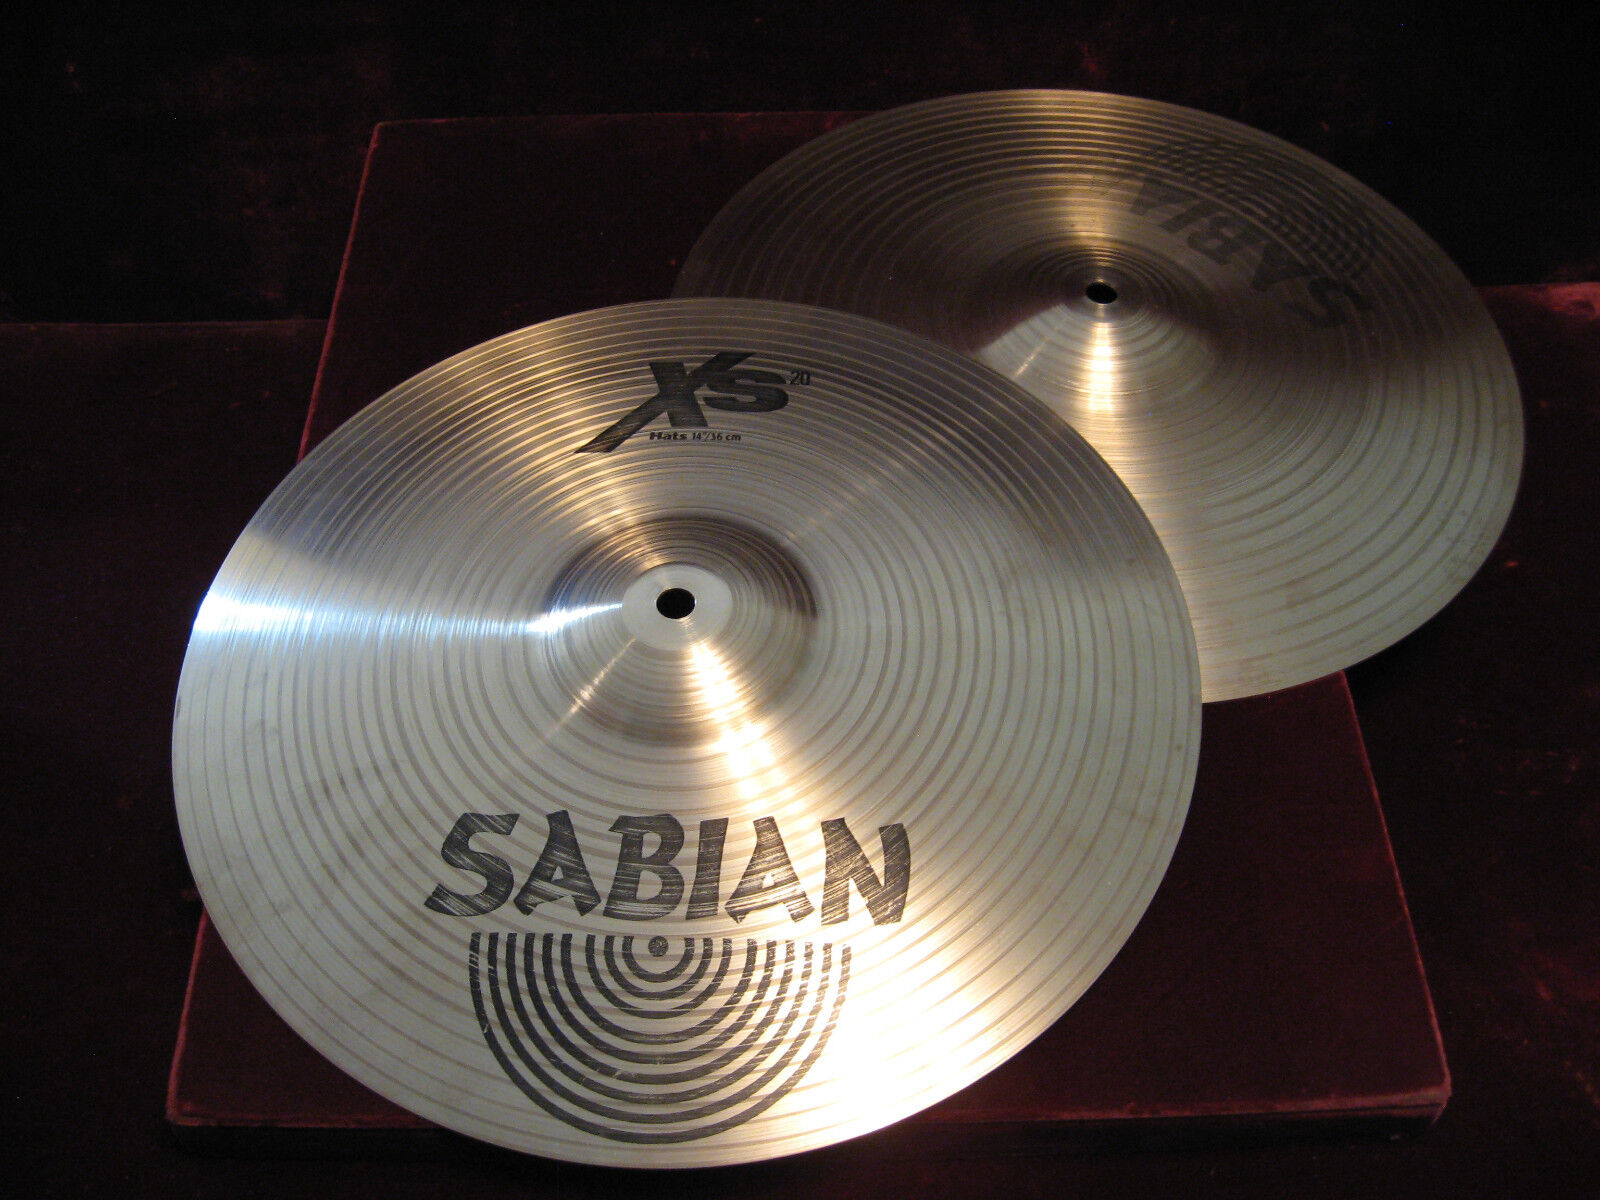 SABIAN Xs 20 Matched Pair 14  HI-HAT CYMBALS - Exc Lightly Used Clean Cond L@@K